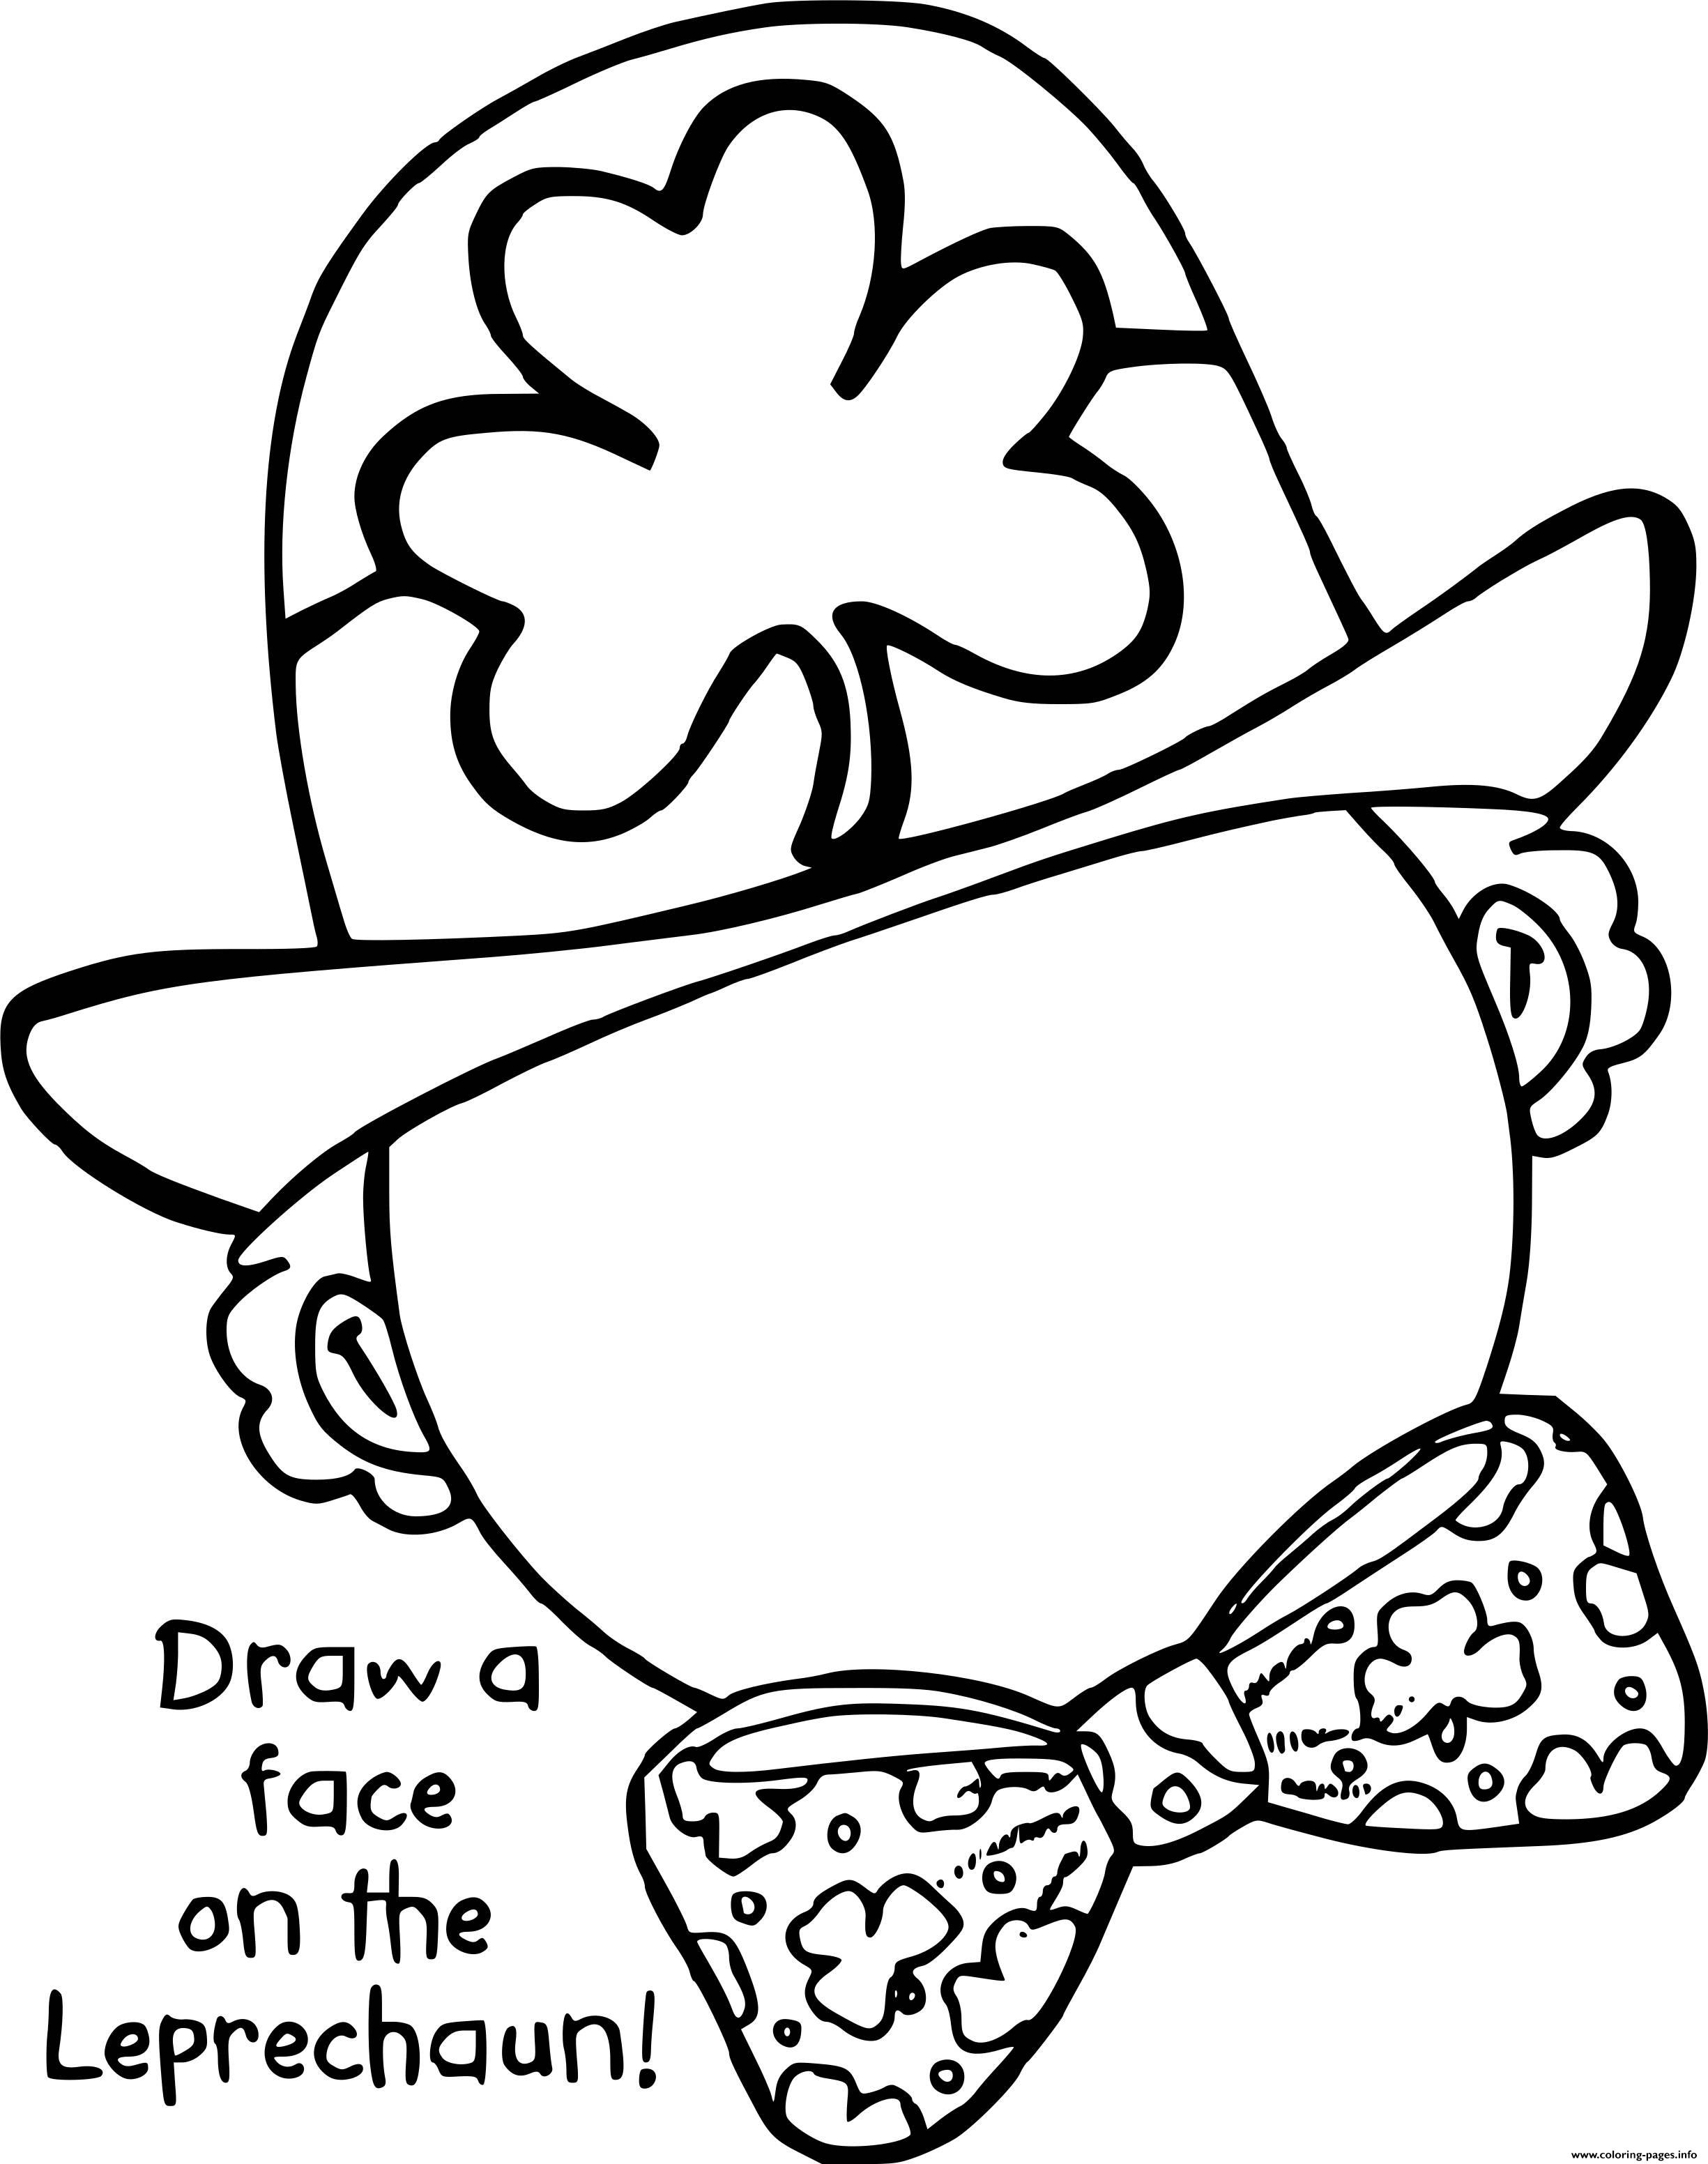 Complete The Leprechaun Coloring Pages Printable